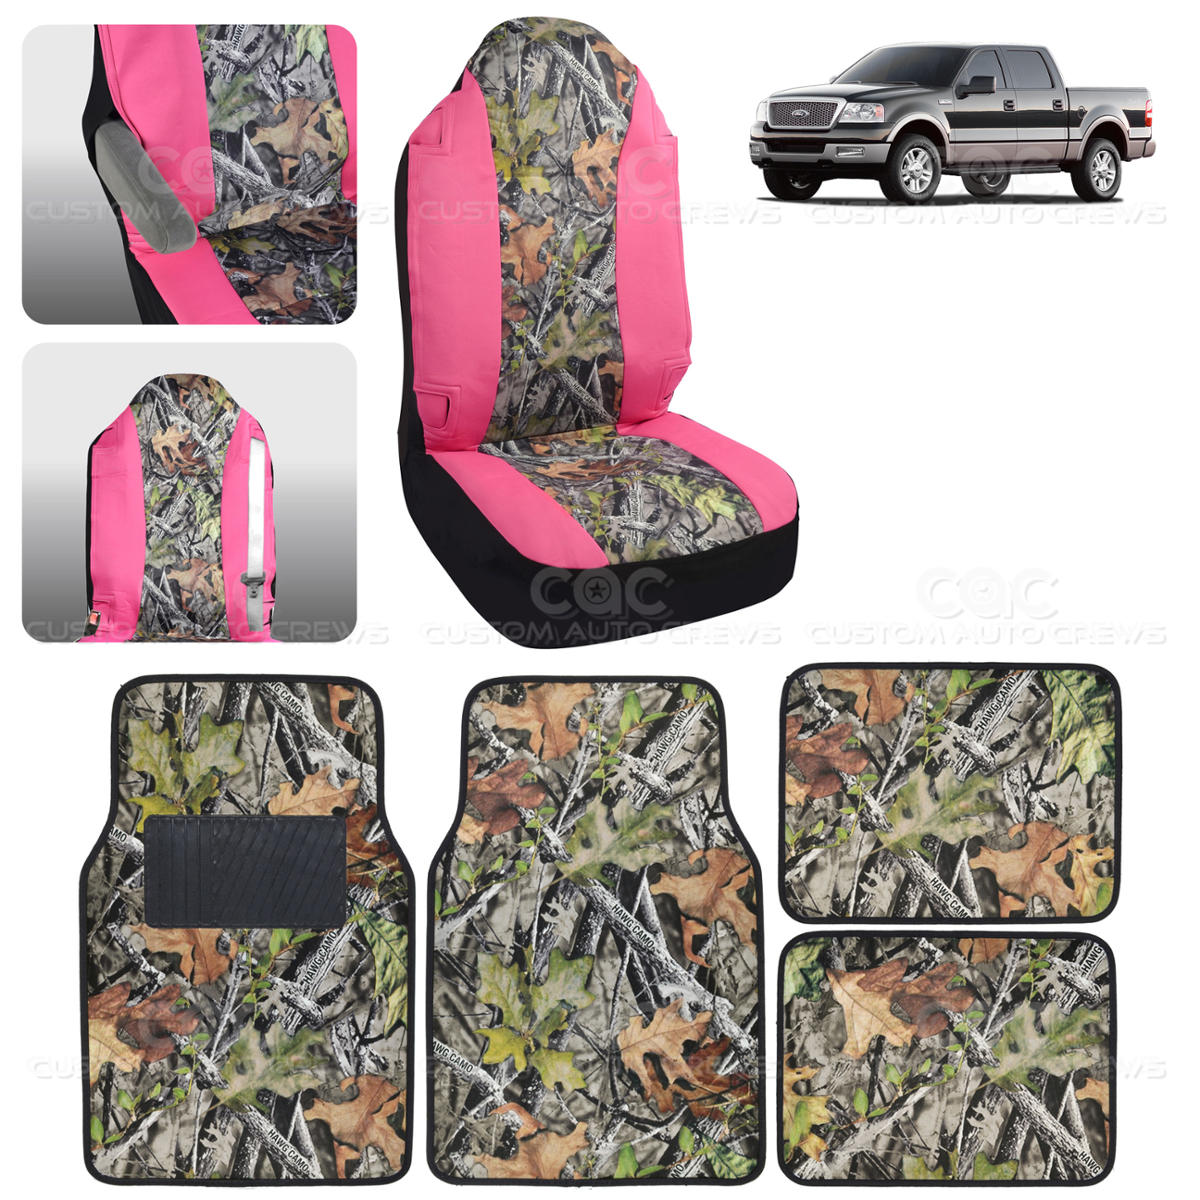 Camo seat cover floor mat for ford f 150 1500 5 piece camouflage pink